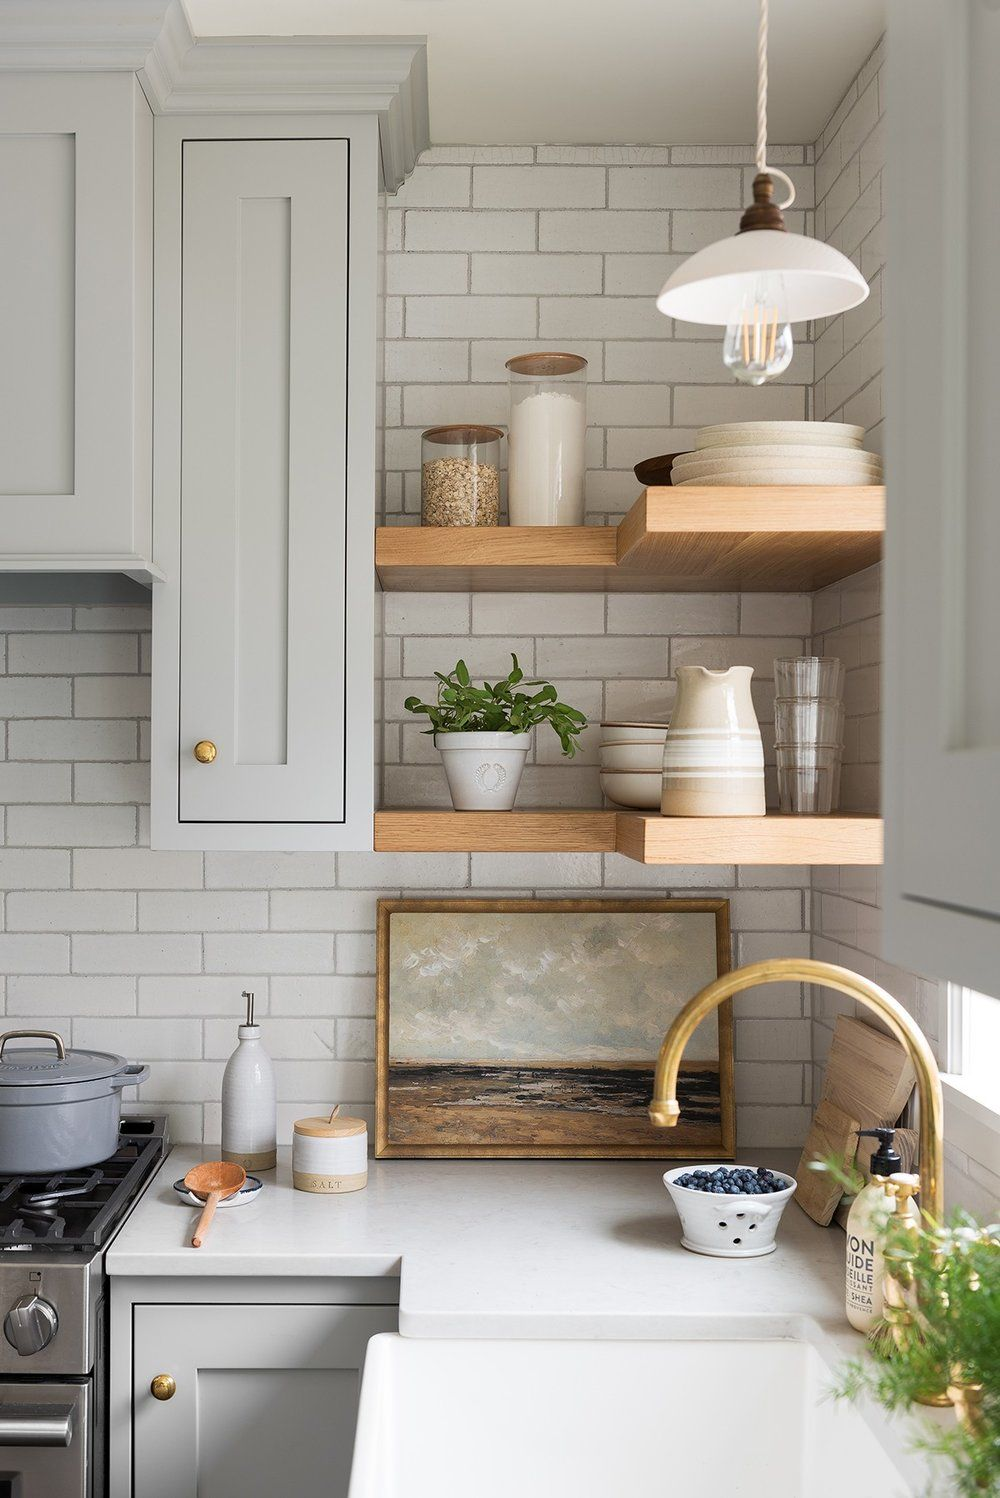 8 Great Neutral Cabinet Colors For Kitchens The Grit And Polish Kitchen Interior Artisan Kitchen Kitchen Style